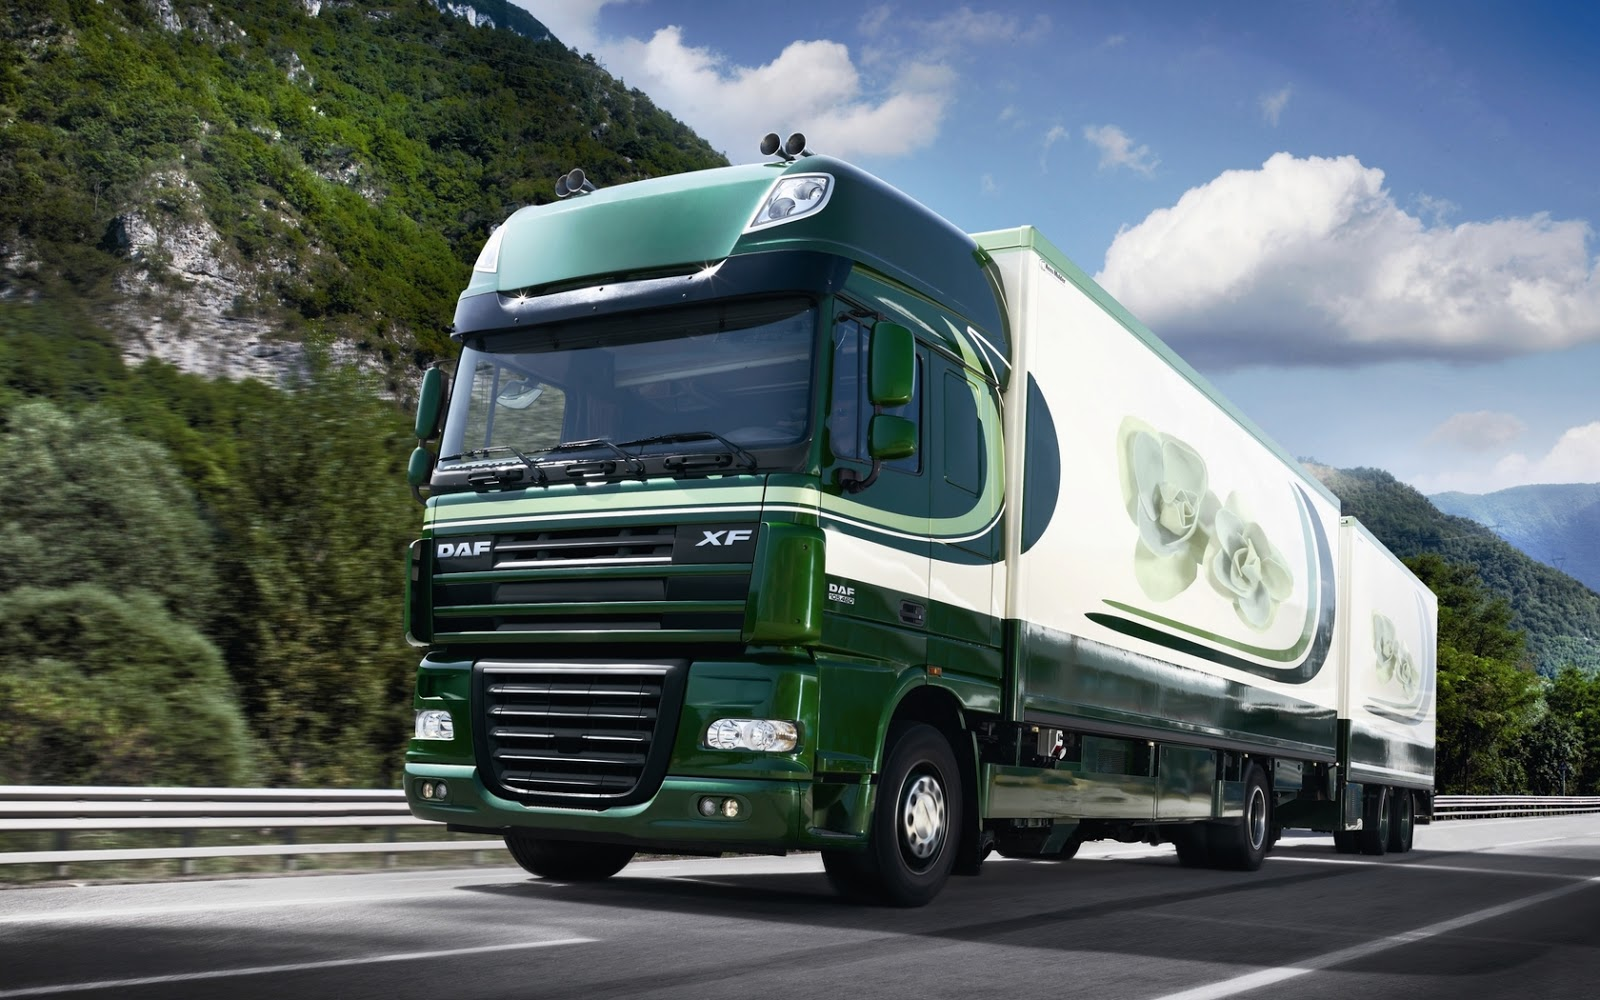 Daf Trucks Wallpapers Cars Wallpapers Hd HD Wallpapers Download Free Images Wallpaper [1000image.com]